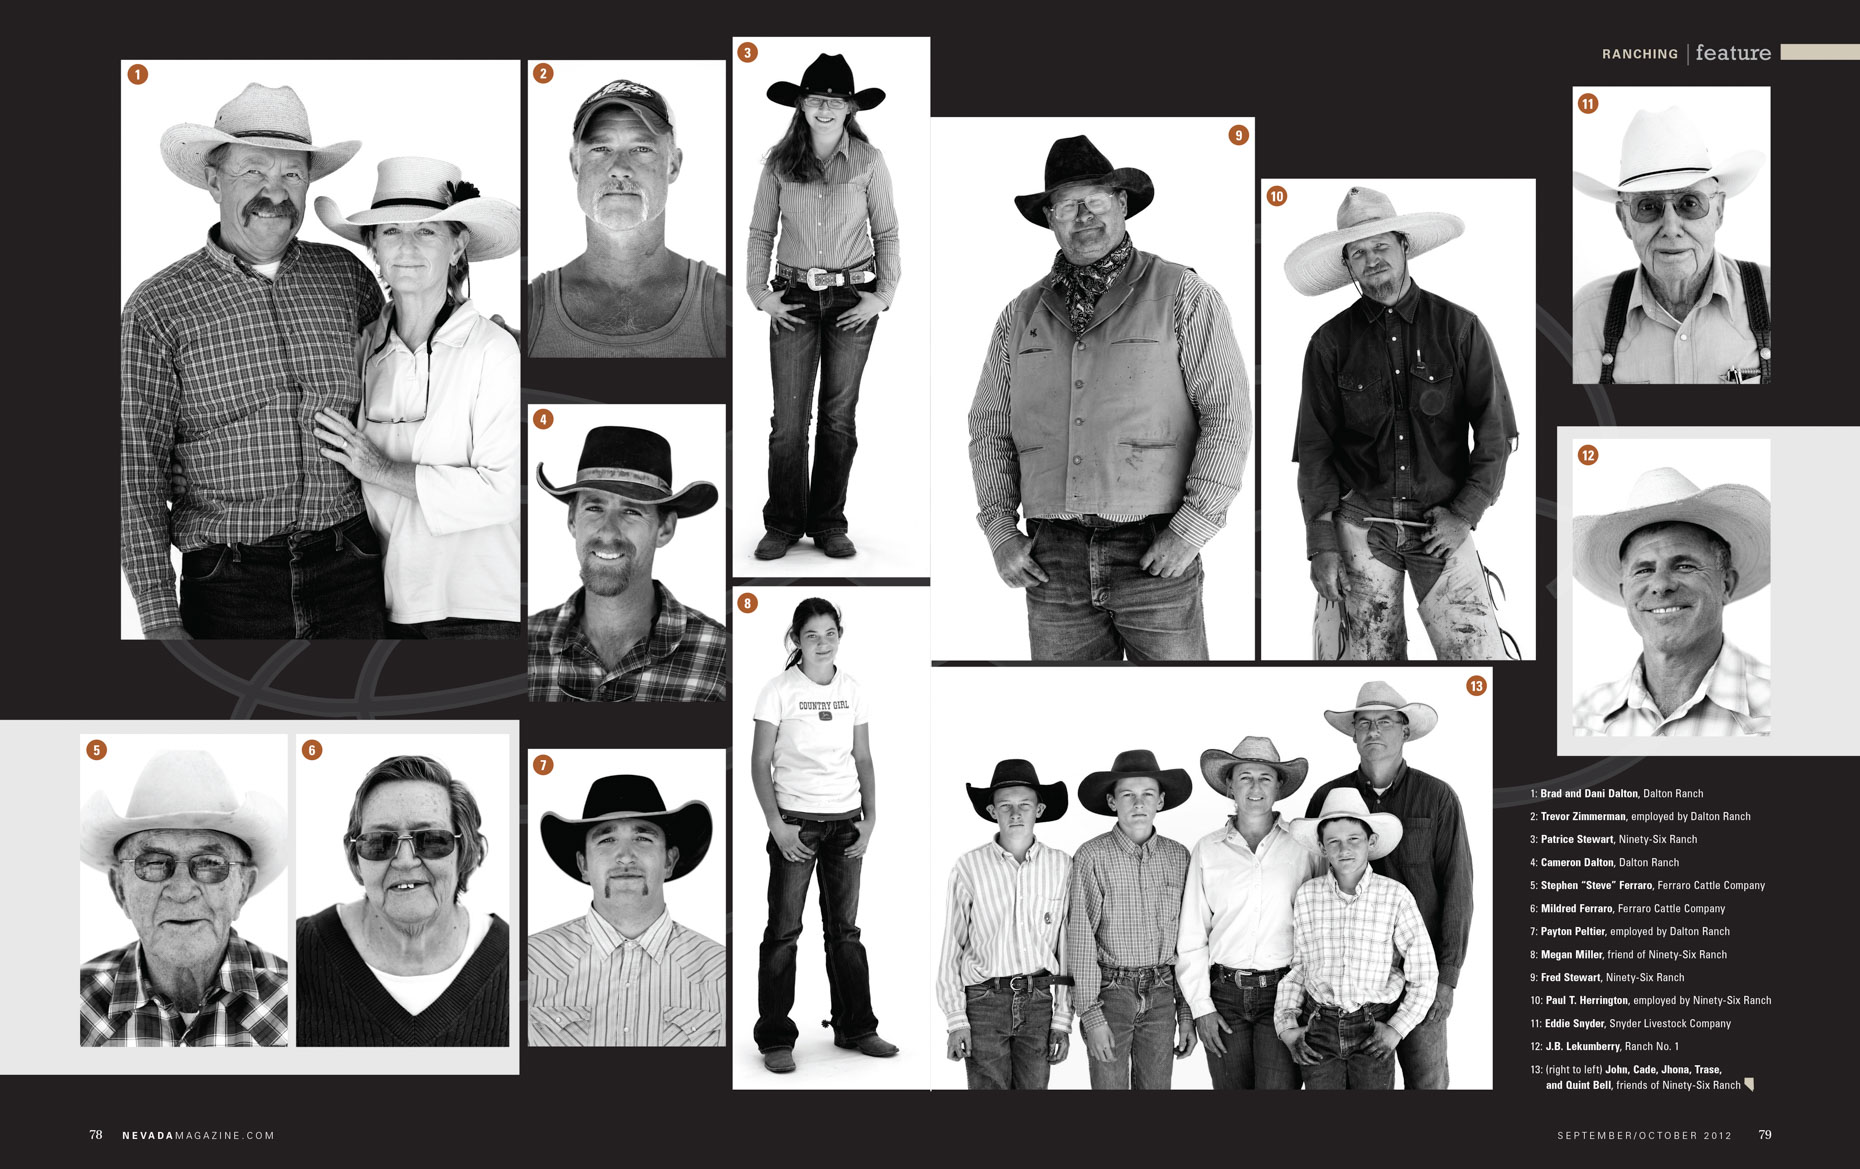 SO12_p068-079_Faces_of_Ranching.indd